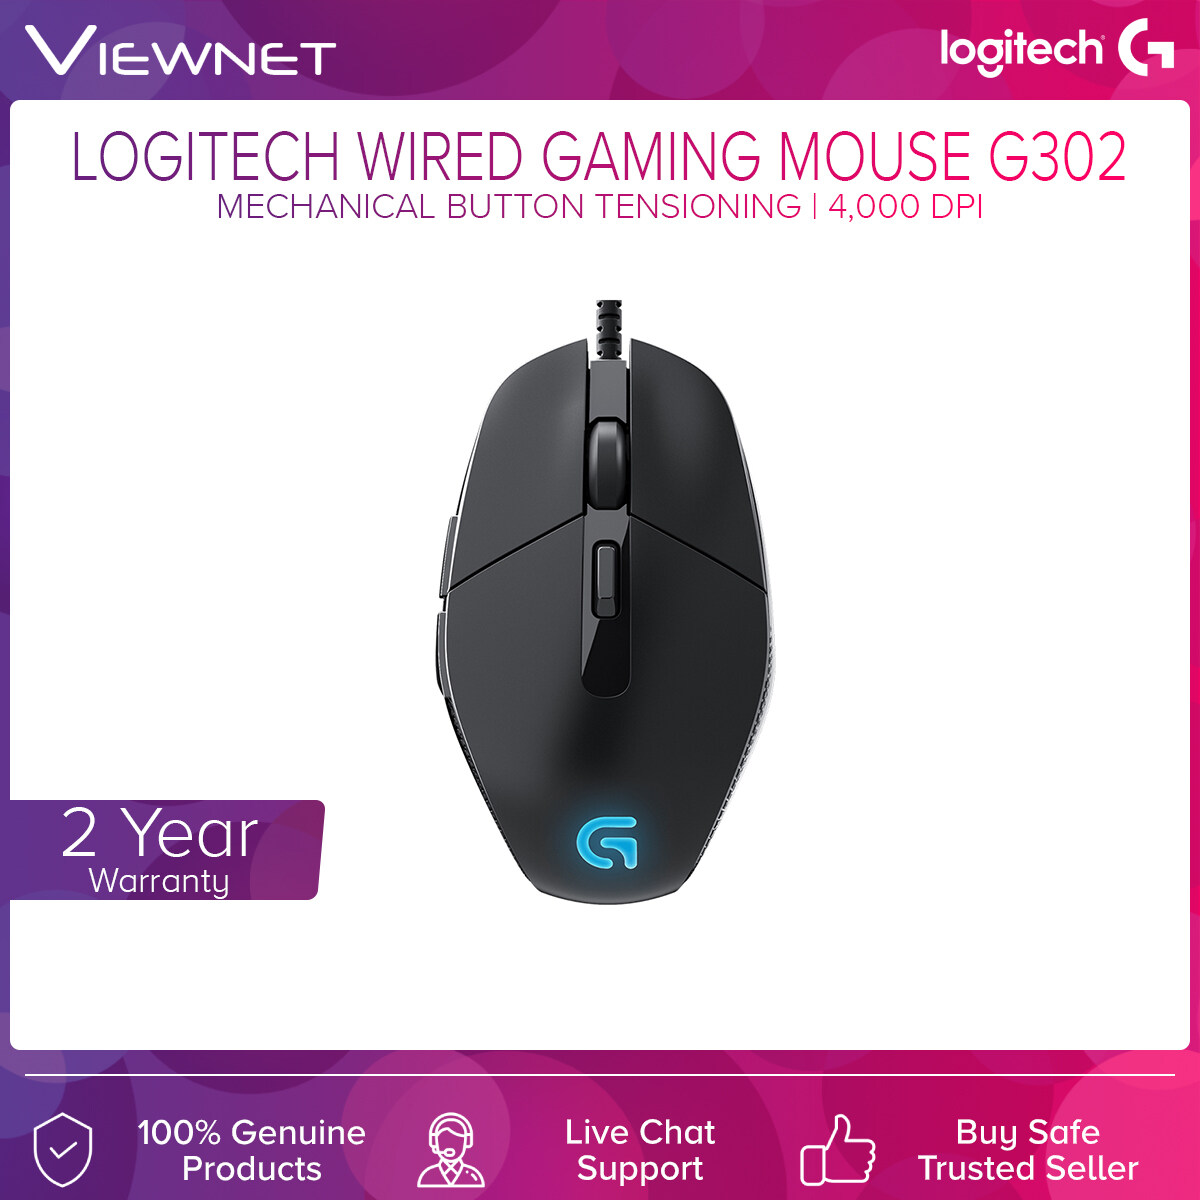 Logitech Wired MOBA Gaming Mouse G302 Daedalus Primise with Mechanical Button Tensioning, 6 Programmable Buttons, Built for Gaming Performance (910-004210)